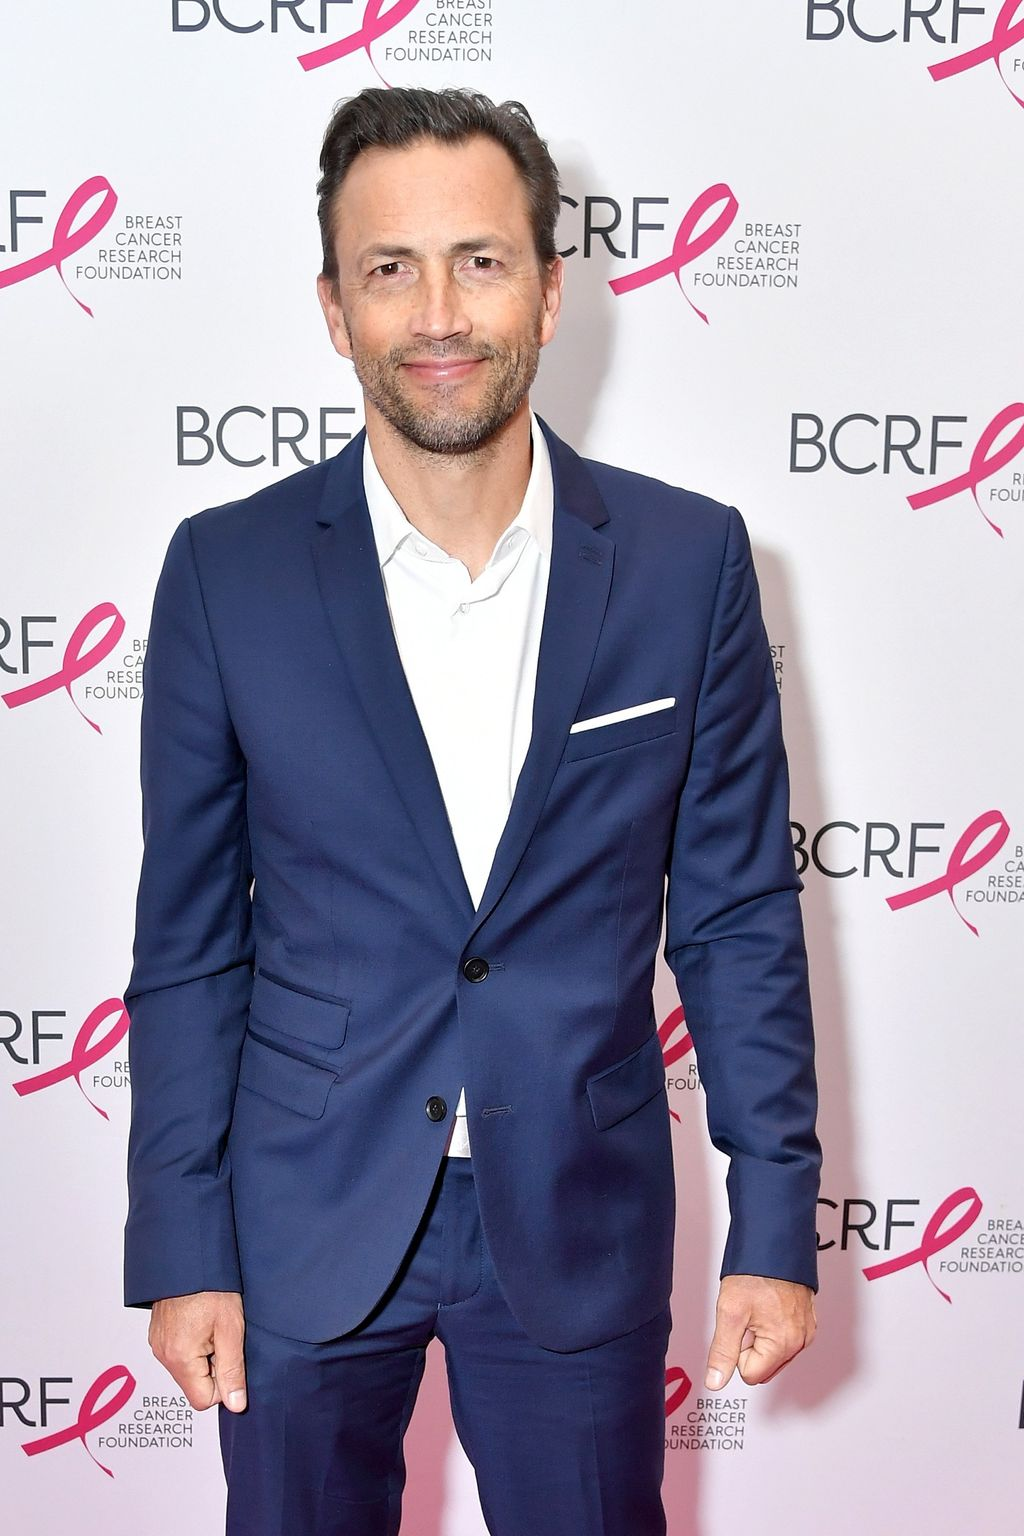 Andrew Shue attends the Breast Cancer Research Foundation (BCRF) New York Symposium & Awards Luncheon at New York Hilton Midtown at New York Hilton Midtown on October 25, 2018, in New York City. | Source: Getty Images.